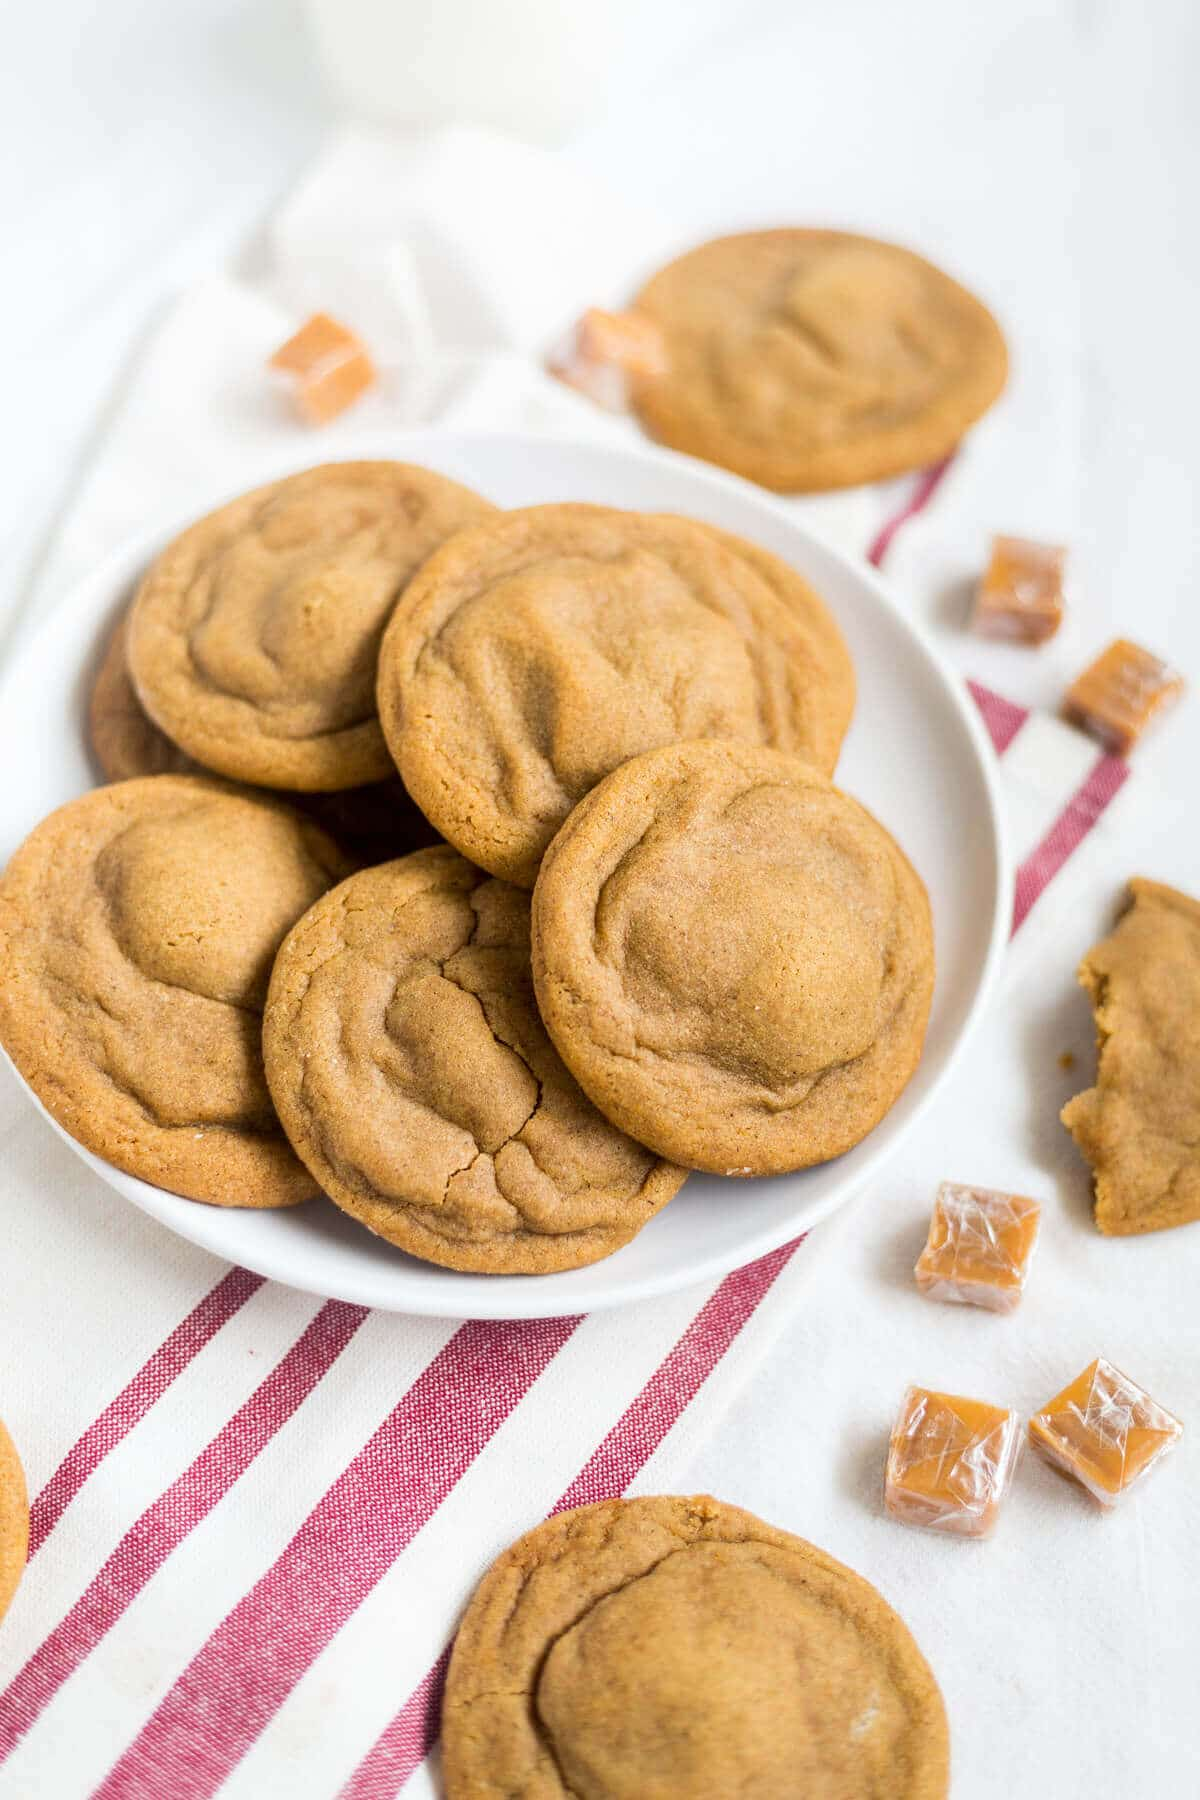 These soft and chewy ginger cookies are stuffed with a little salted caramel and baked to perfection. They're a great holiday recipe to add to your Christmas cookie collection.